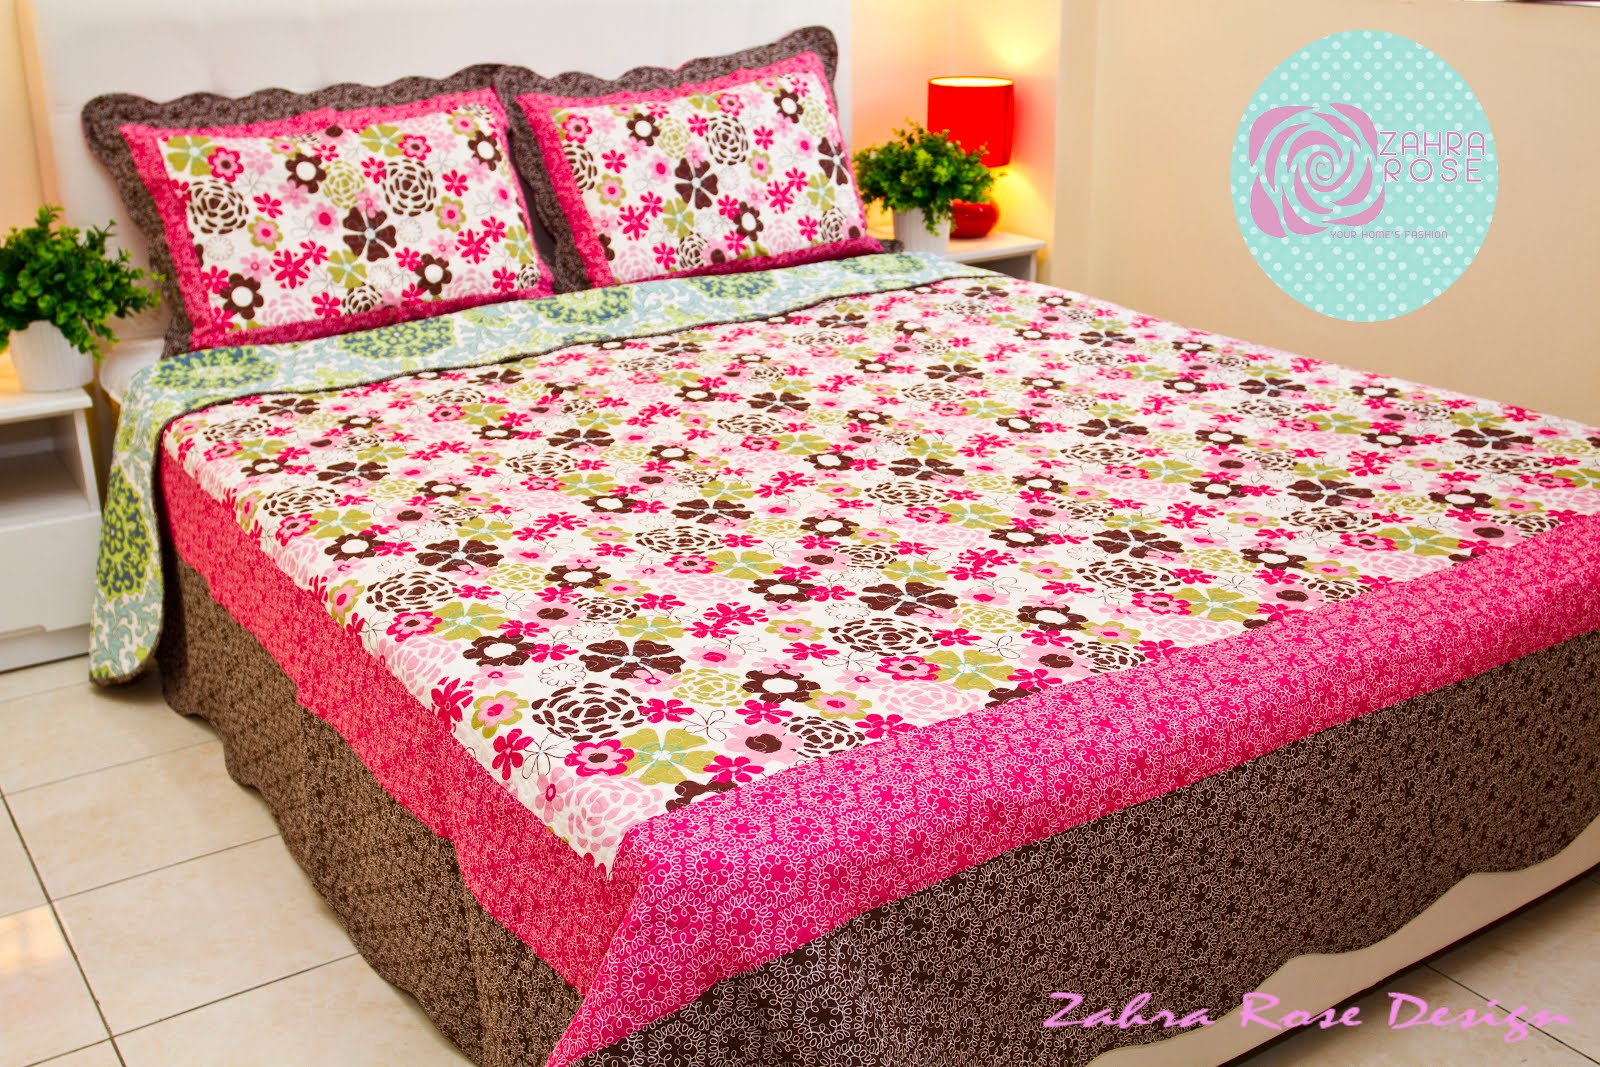 Bed sheets designs patchwork - Zr 009